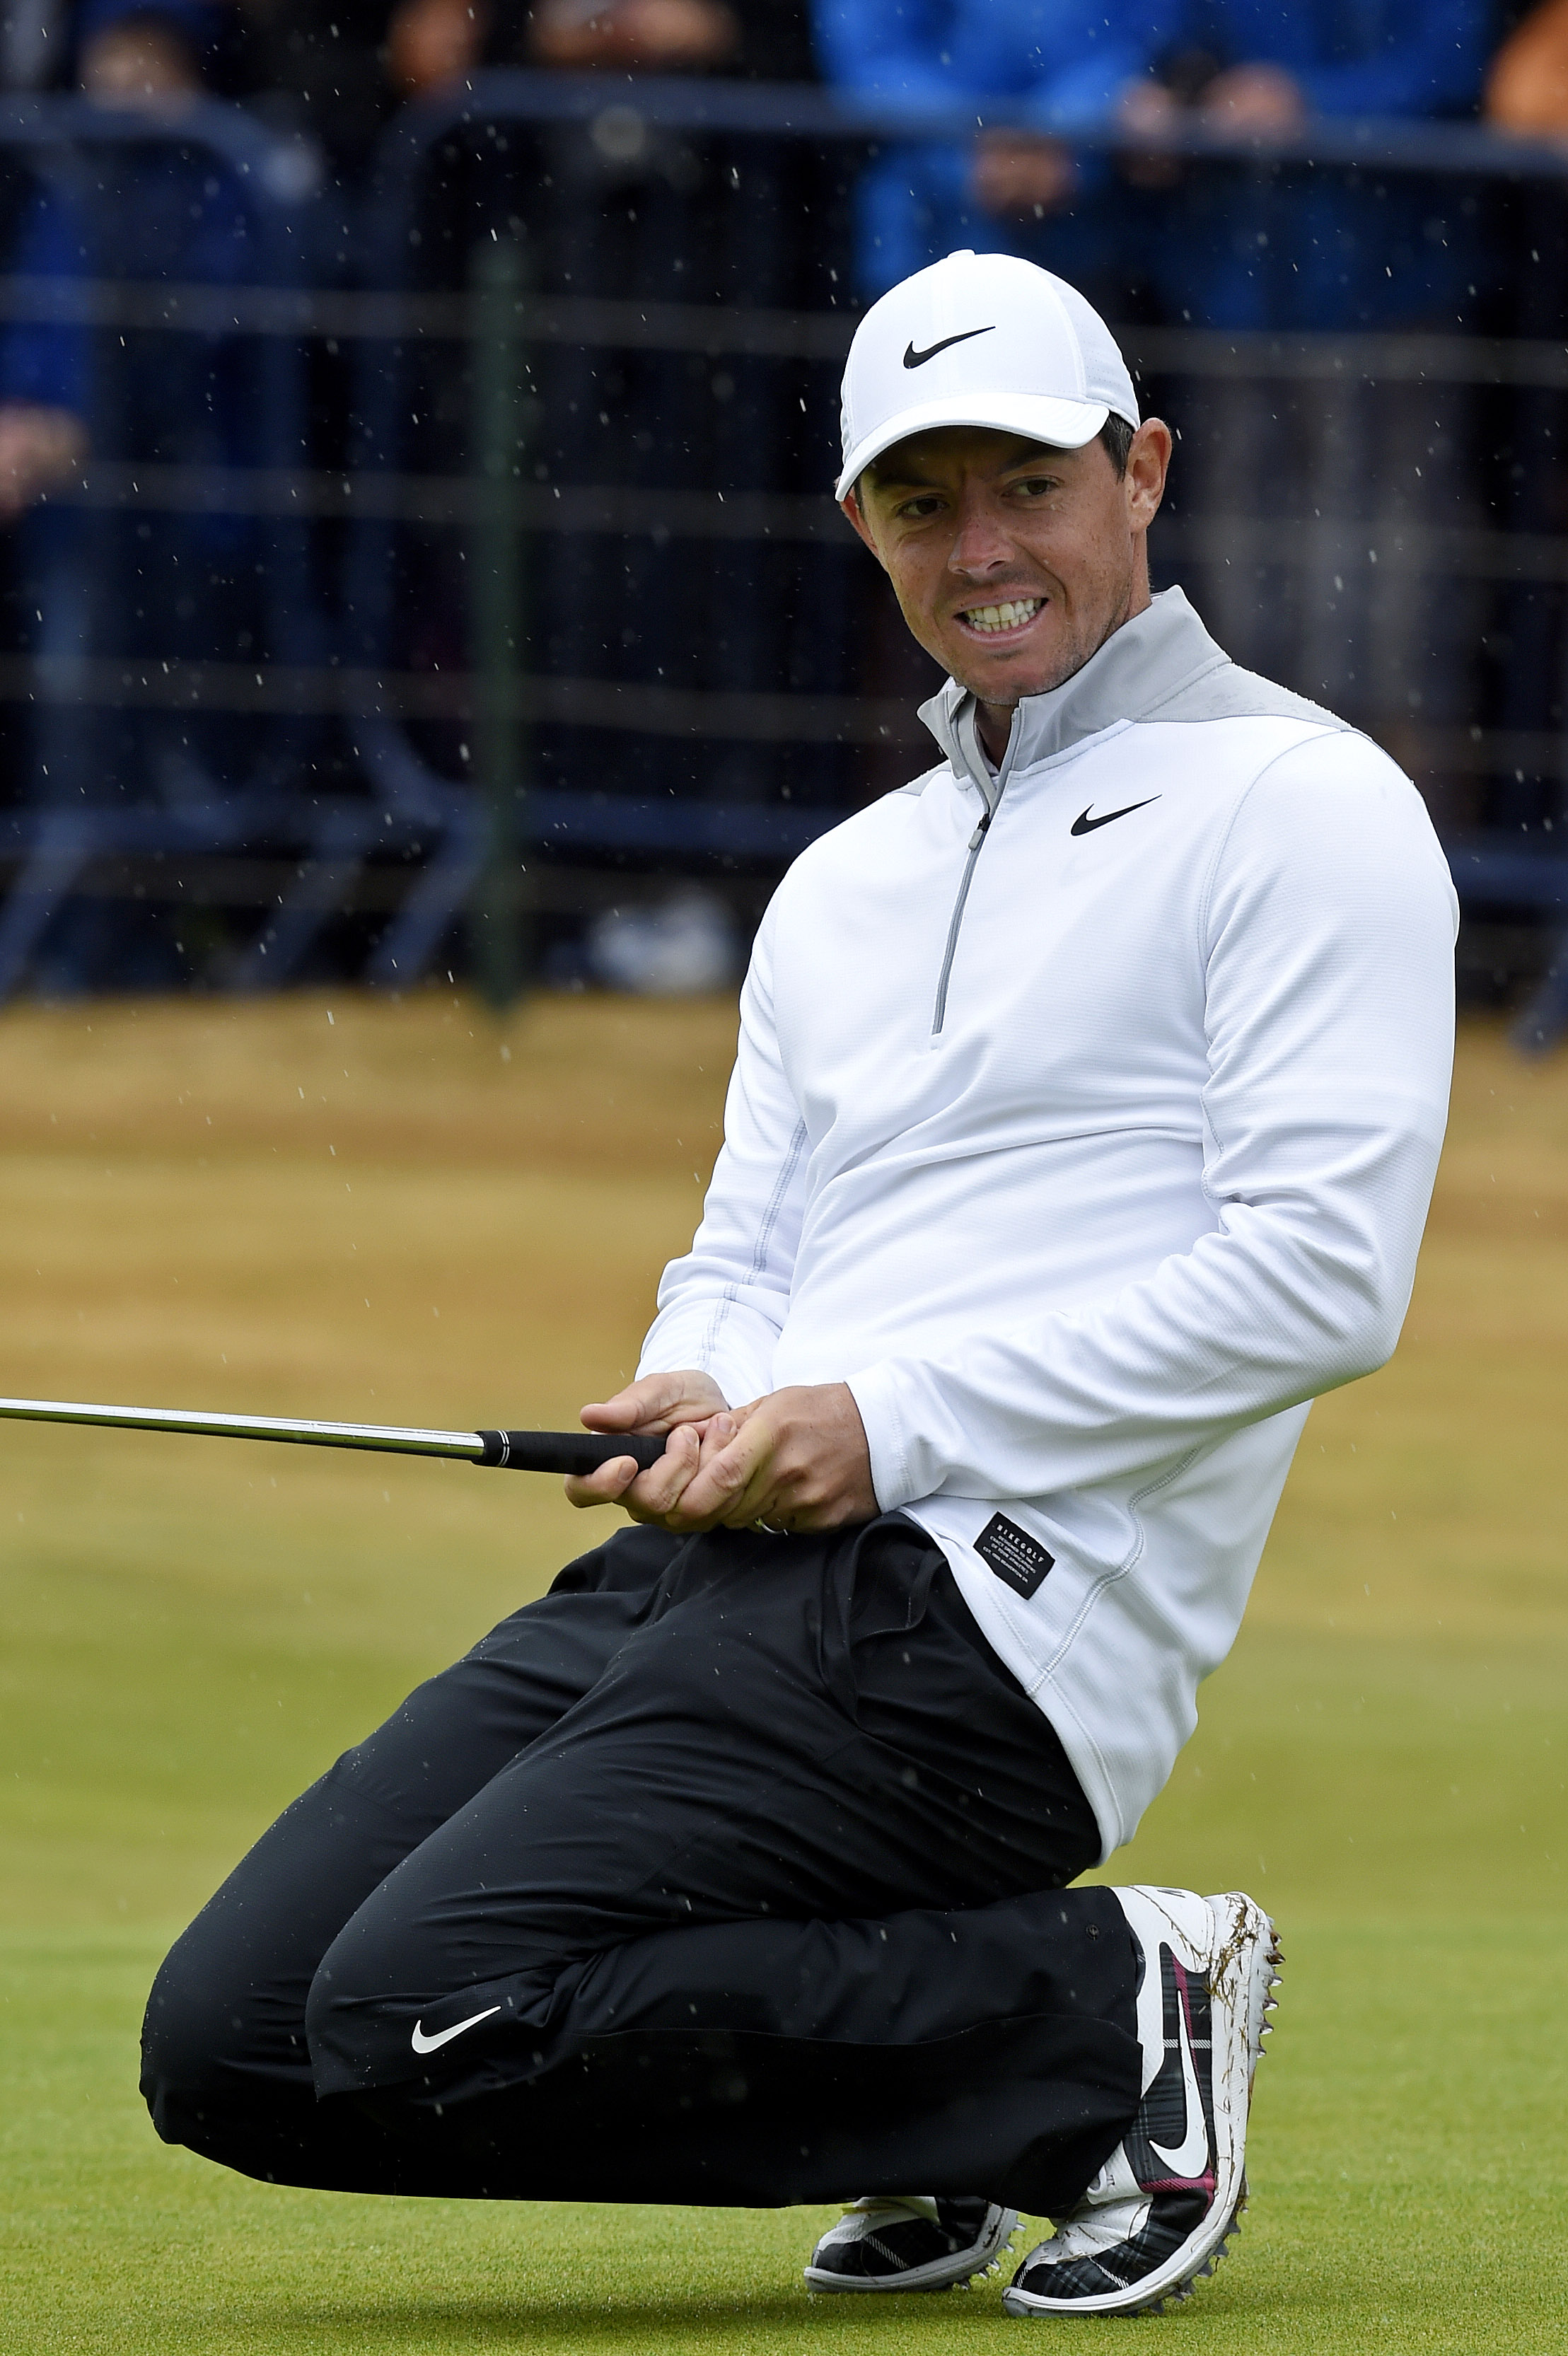 Jul 20, 2018; Carnoustie, SCT; Rory McIlroy reacts to his putt on the 18th green during the second round of The Open Championship golf tournament at Carnoustie Golf Links. Mandatory Credit: Ian Rutherford-USA TODAY Sports